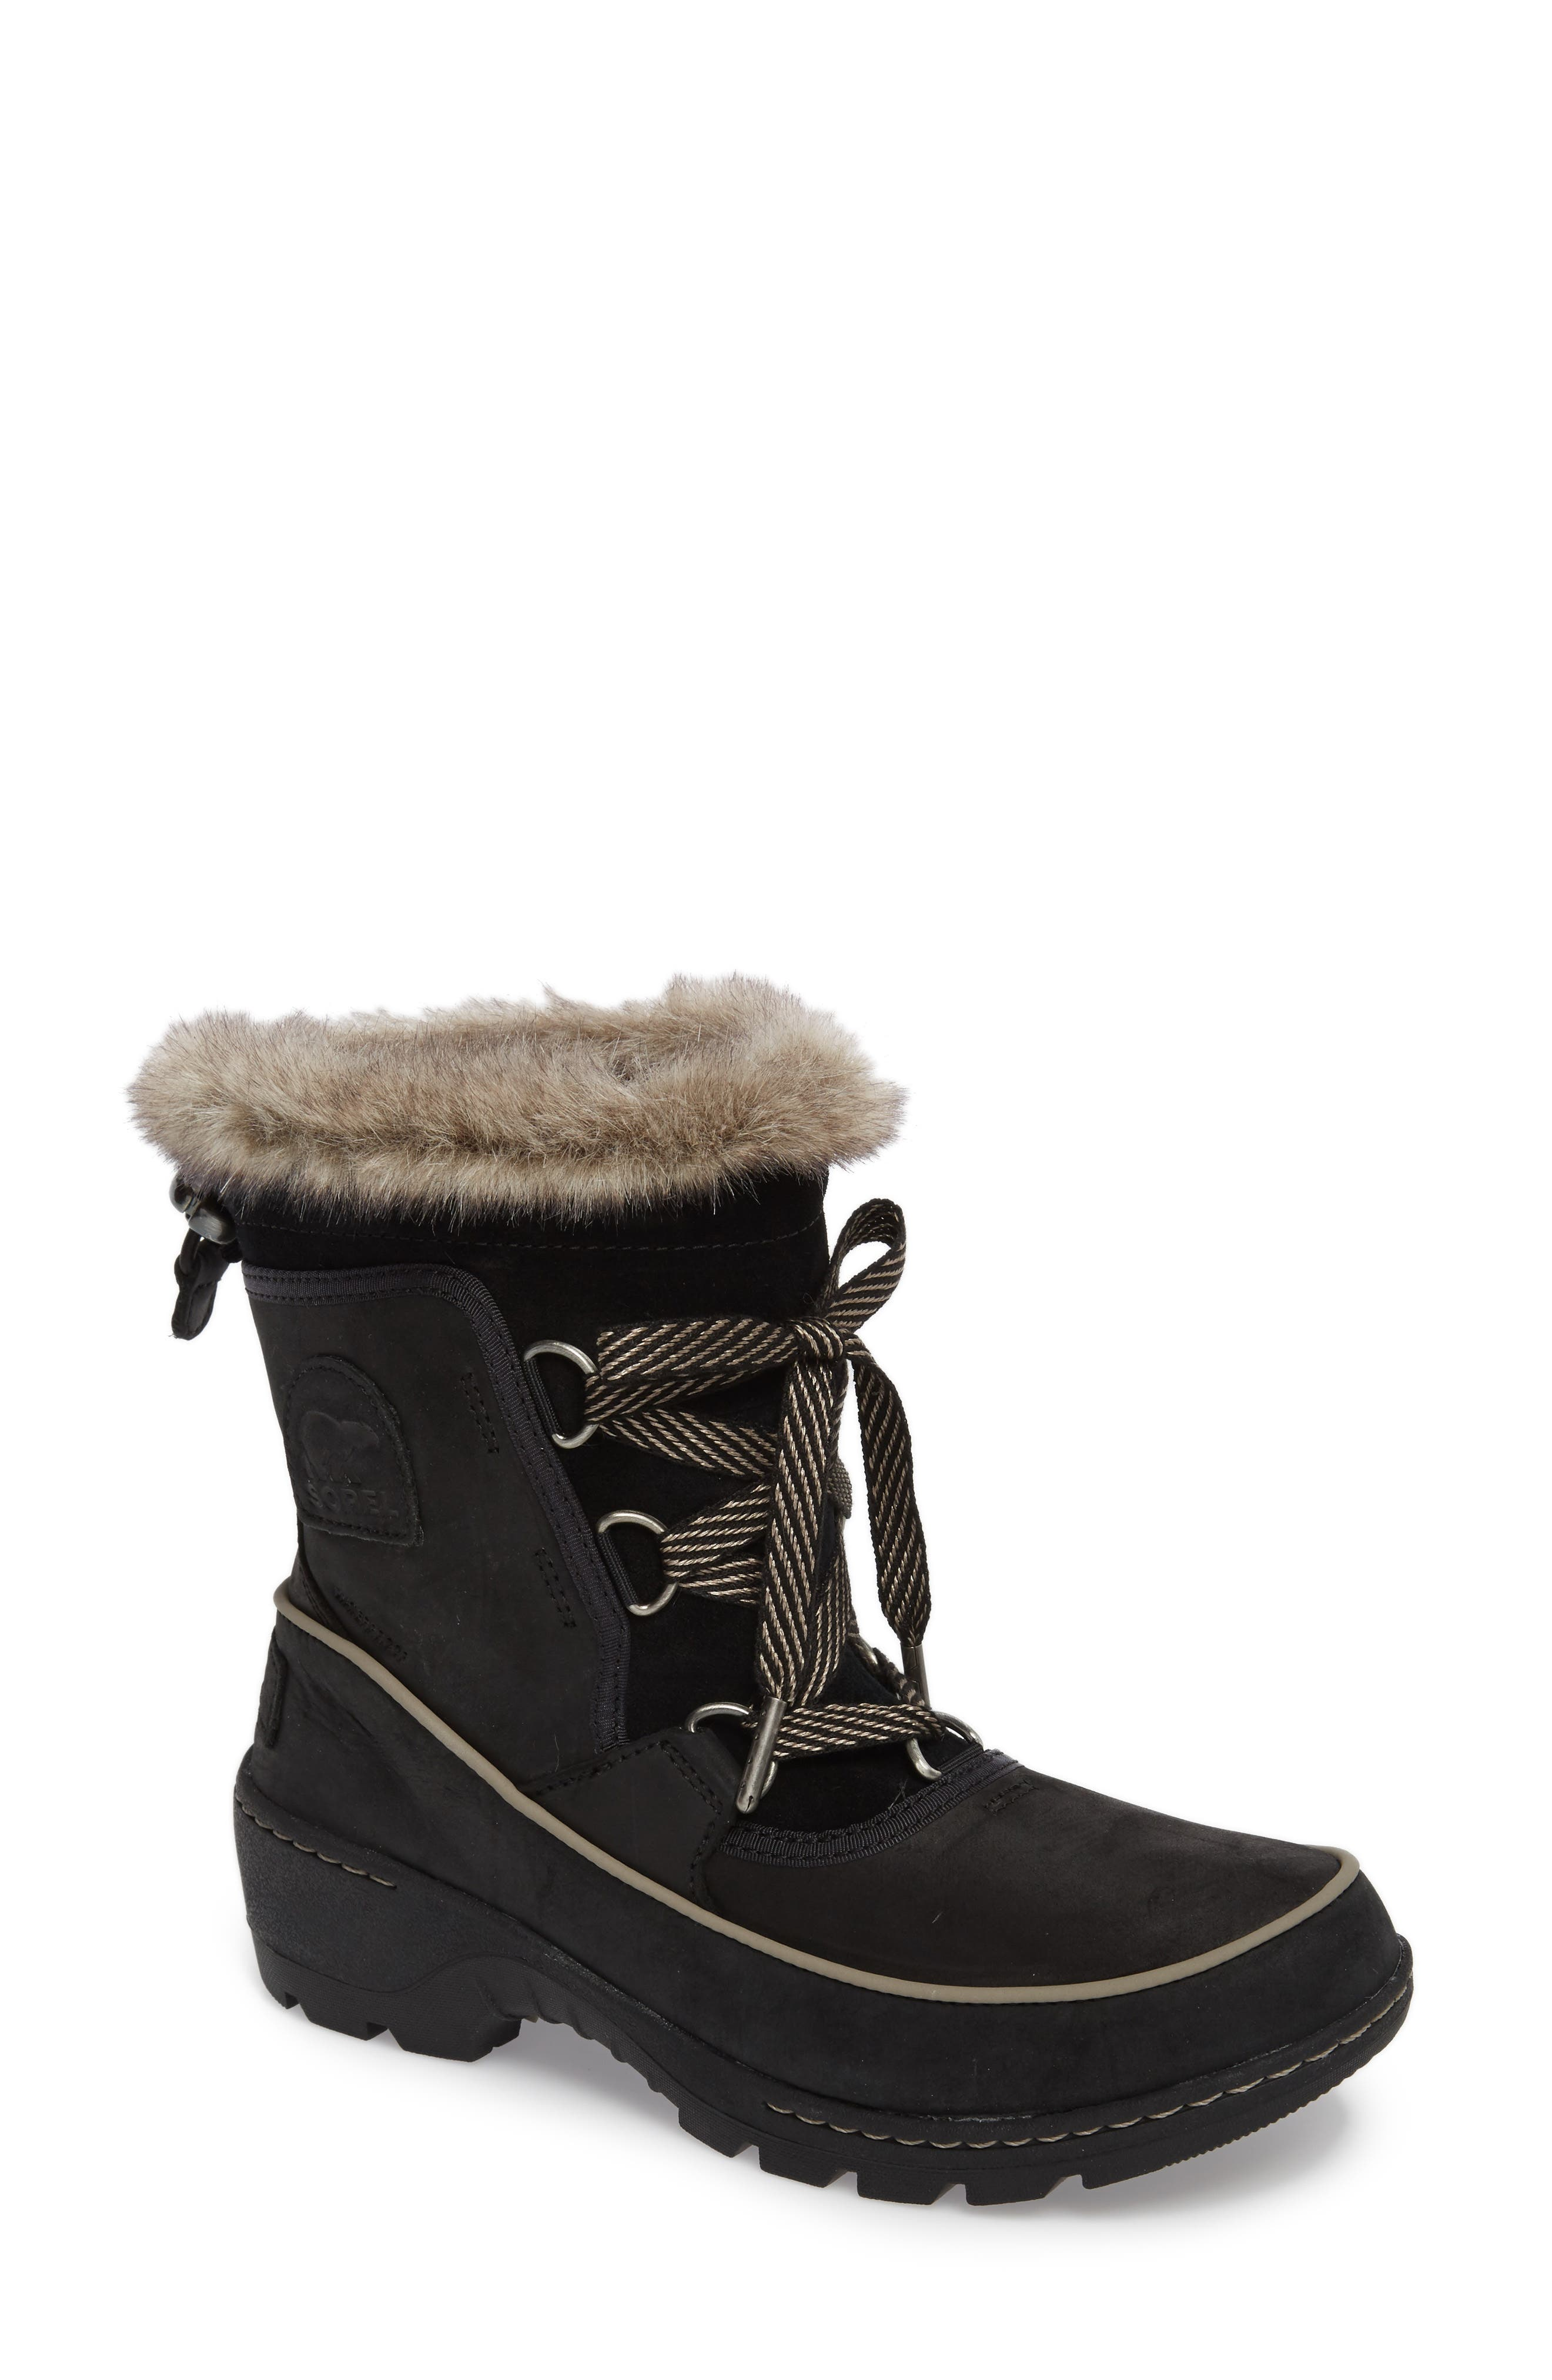 Tivoli II Insulated Winter Boot with Faux Fur Trim,                         Main,                         color, Black/ Kettle